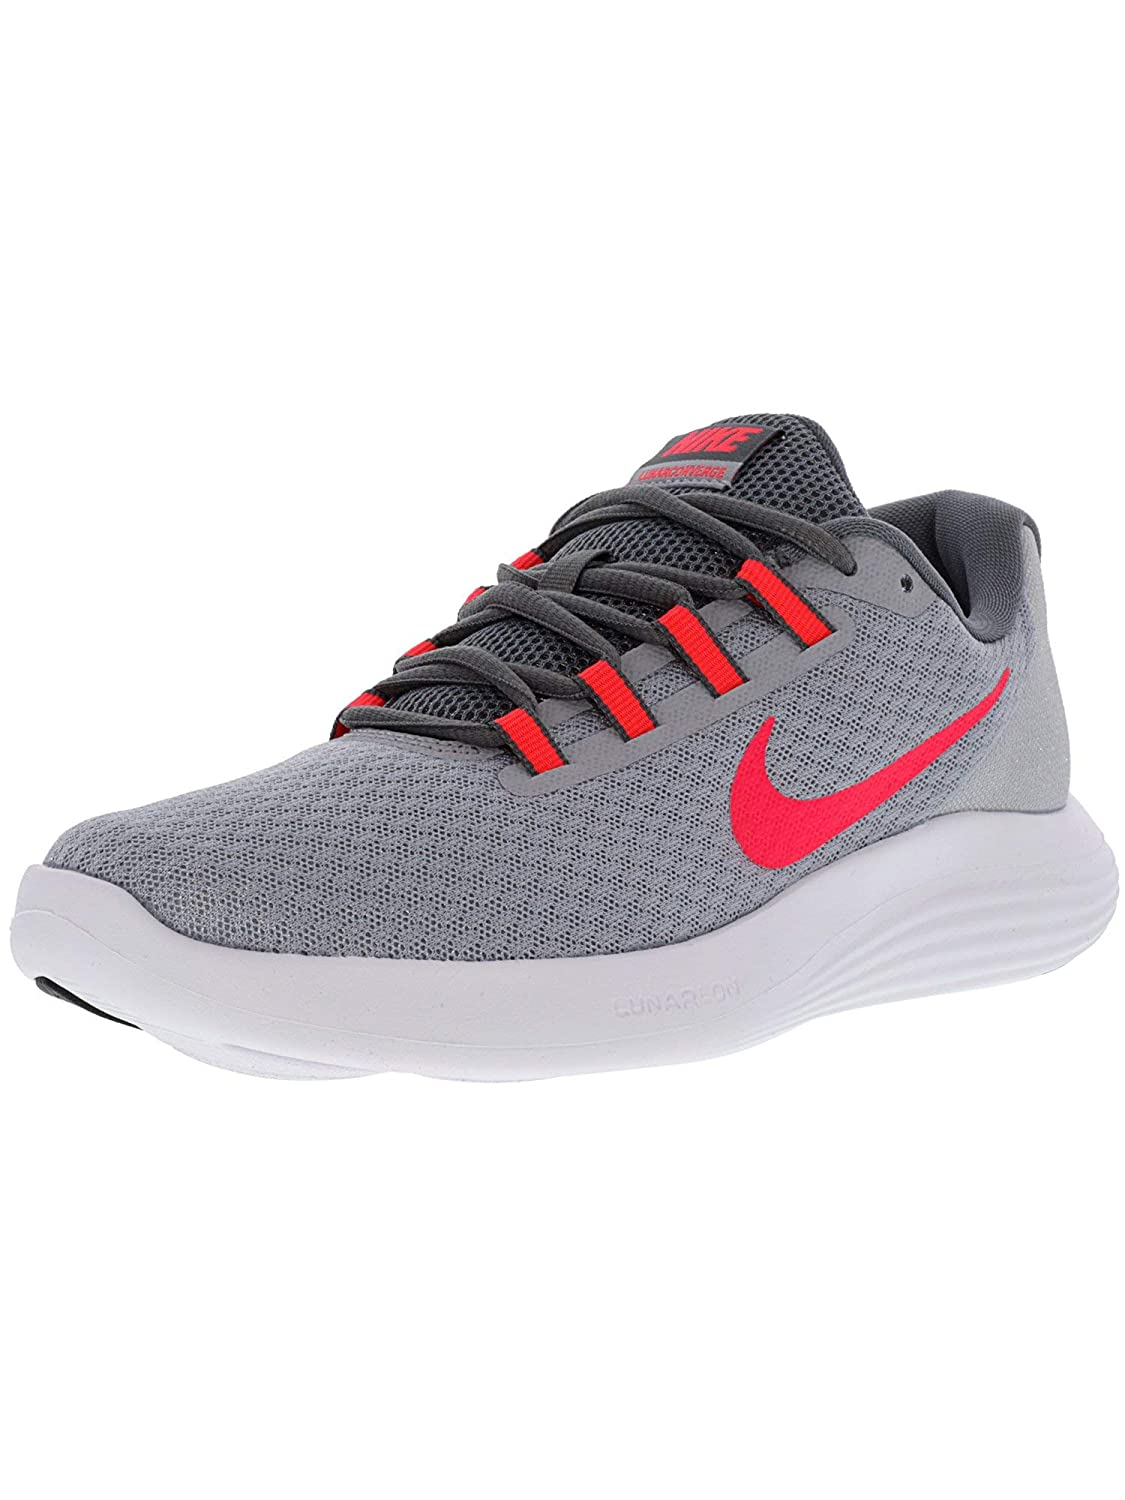 finest selection 277eb cccc0 Amazon.com   Nike Womens Luanrconverge Running Trainers 852469 Sneakers  Shoes   Road Running